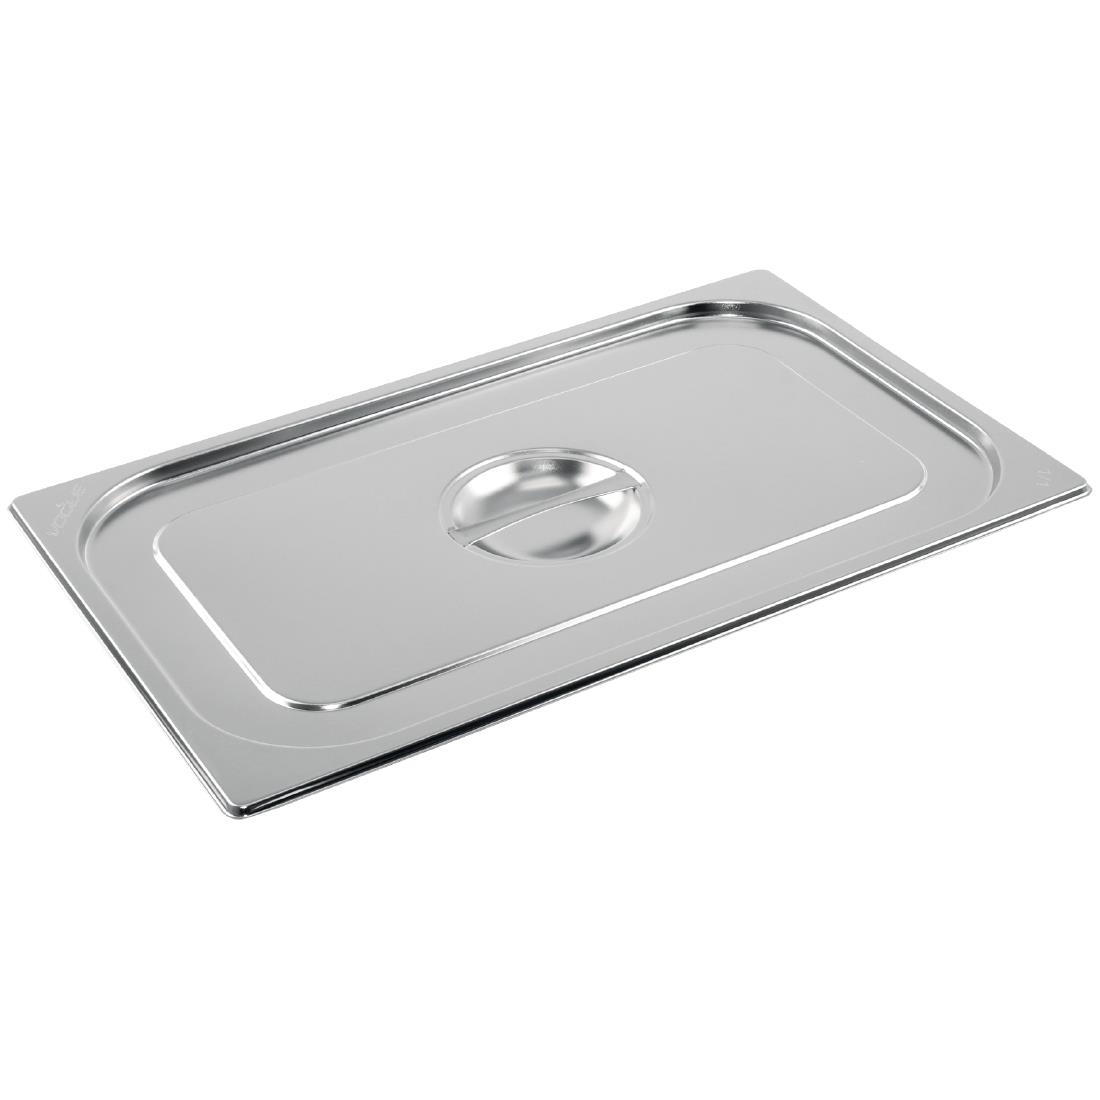 Vogue Stainless Steel 1/1 Gastronorm Lid